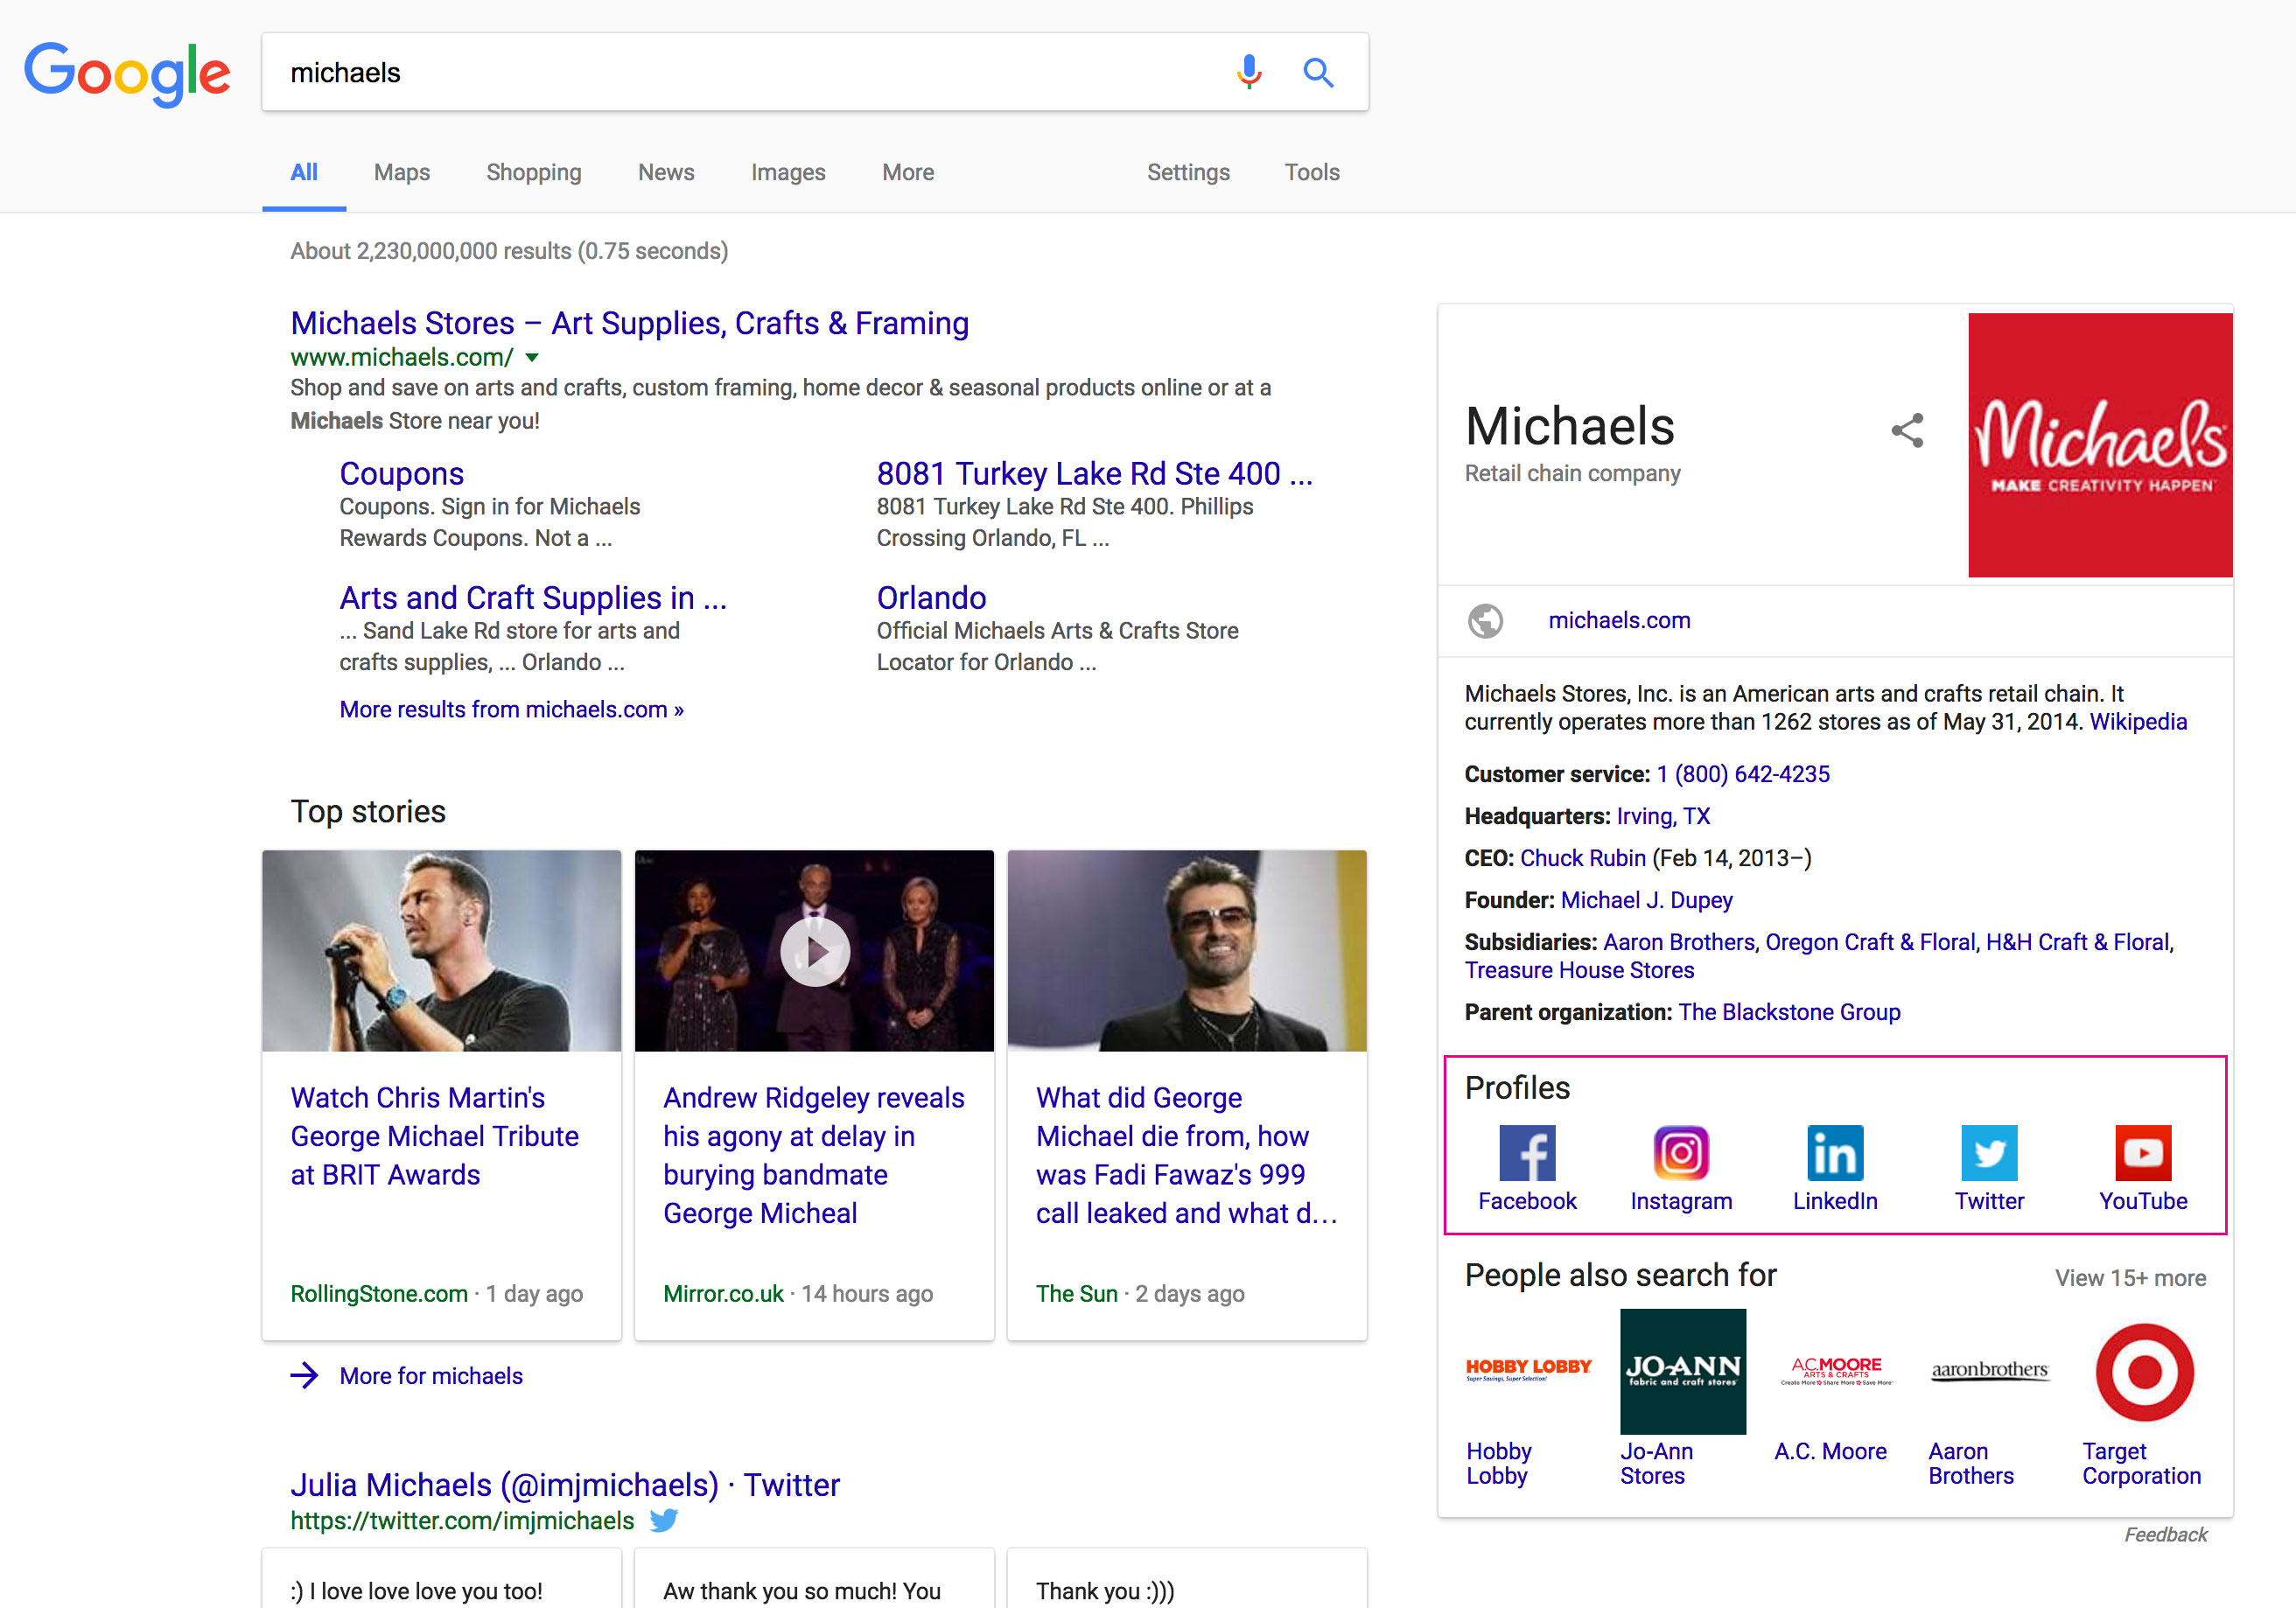 How to Add Social Share to your Company's Google Search